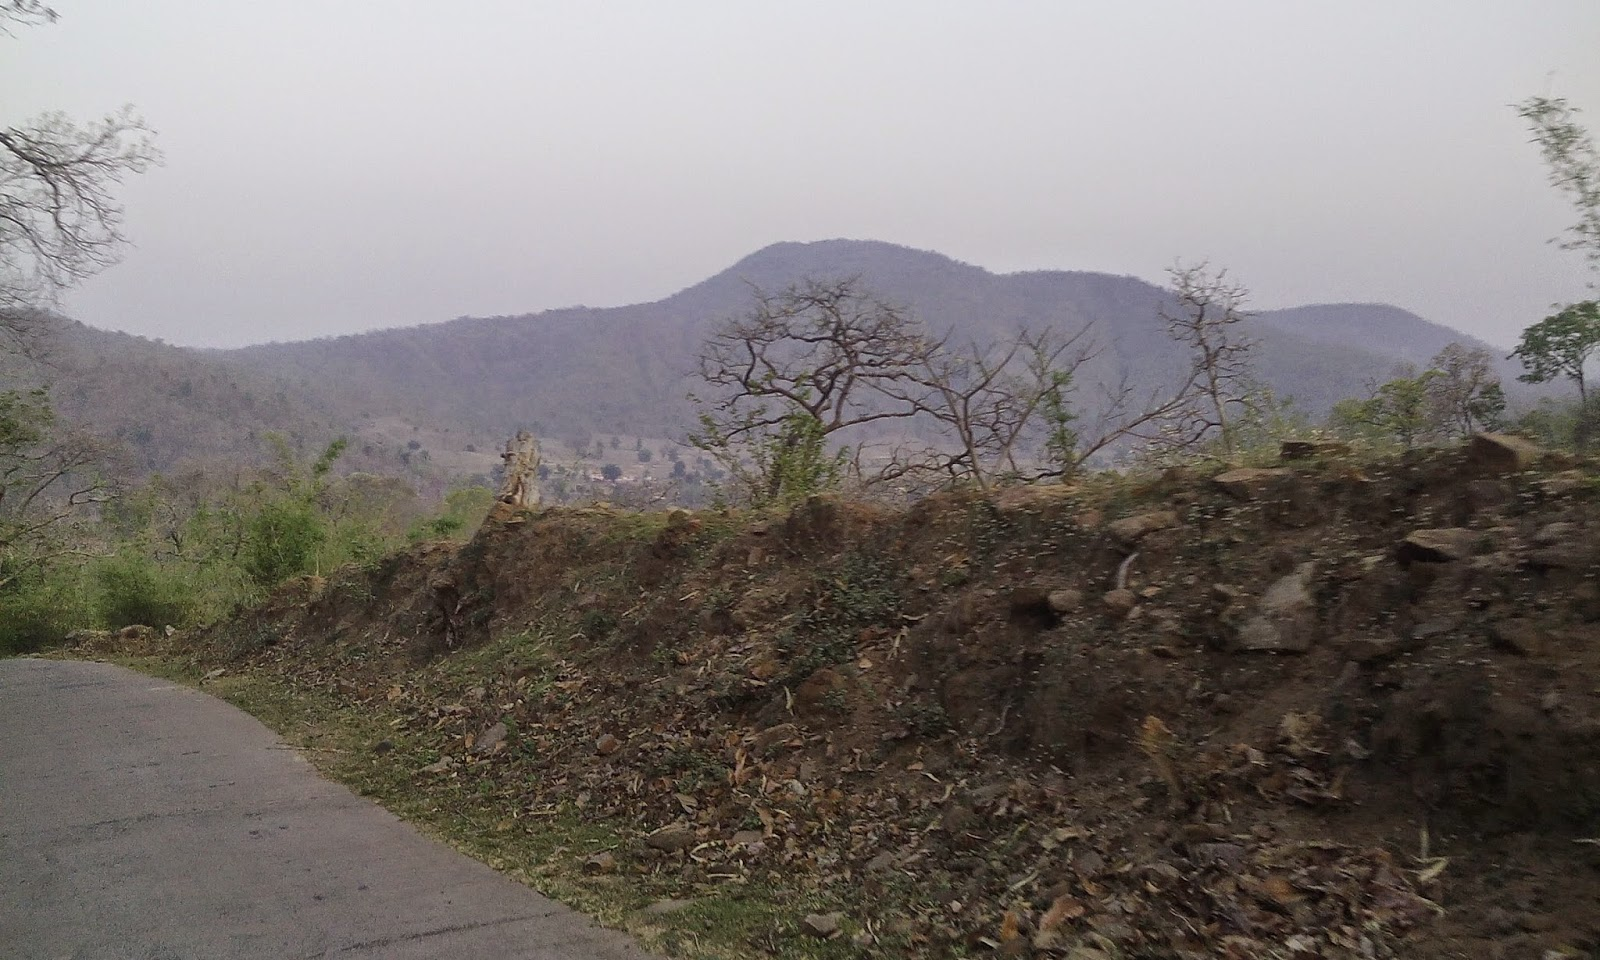 Road view of satpura hills